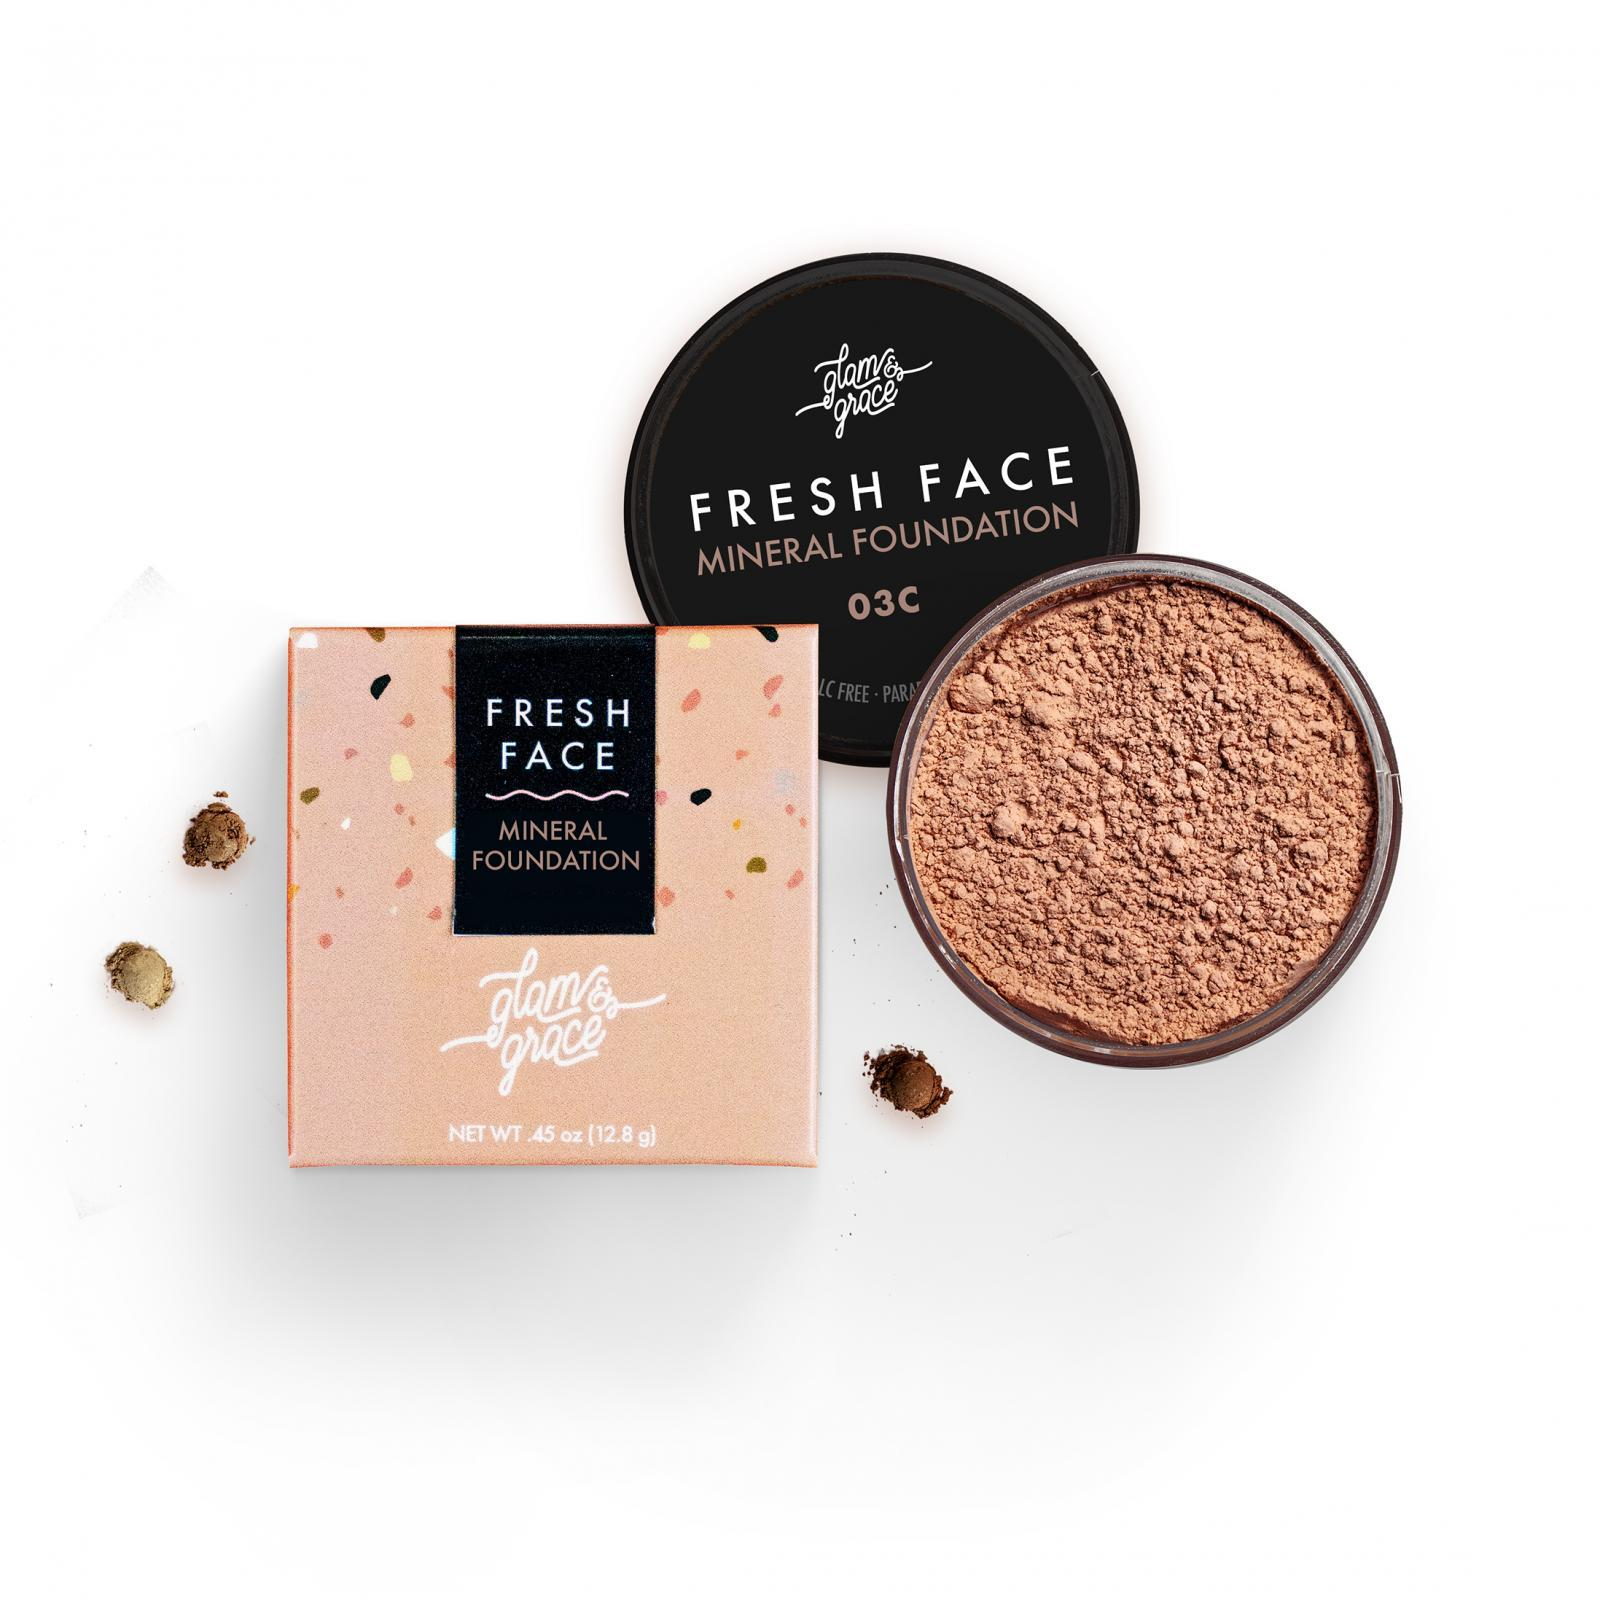 FRESH Face Mineral Foundation Powder - Tan 03C